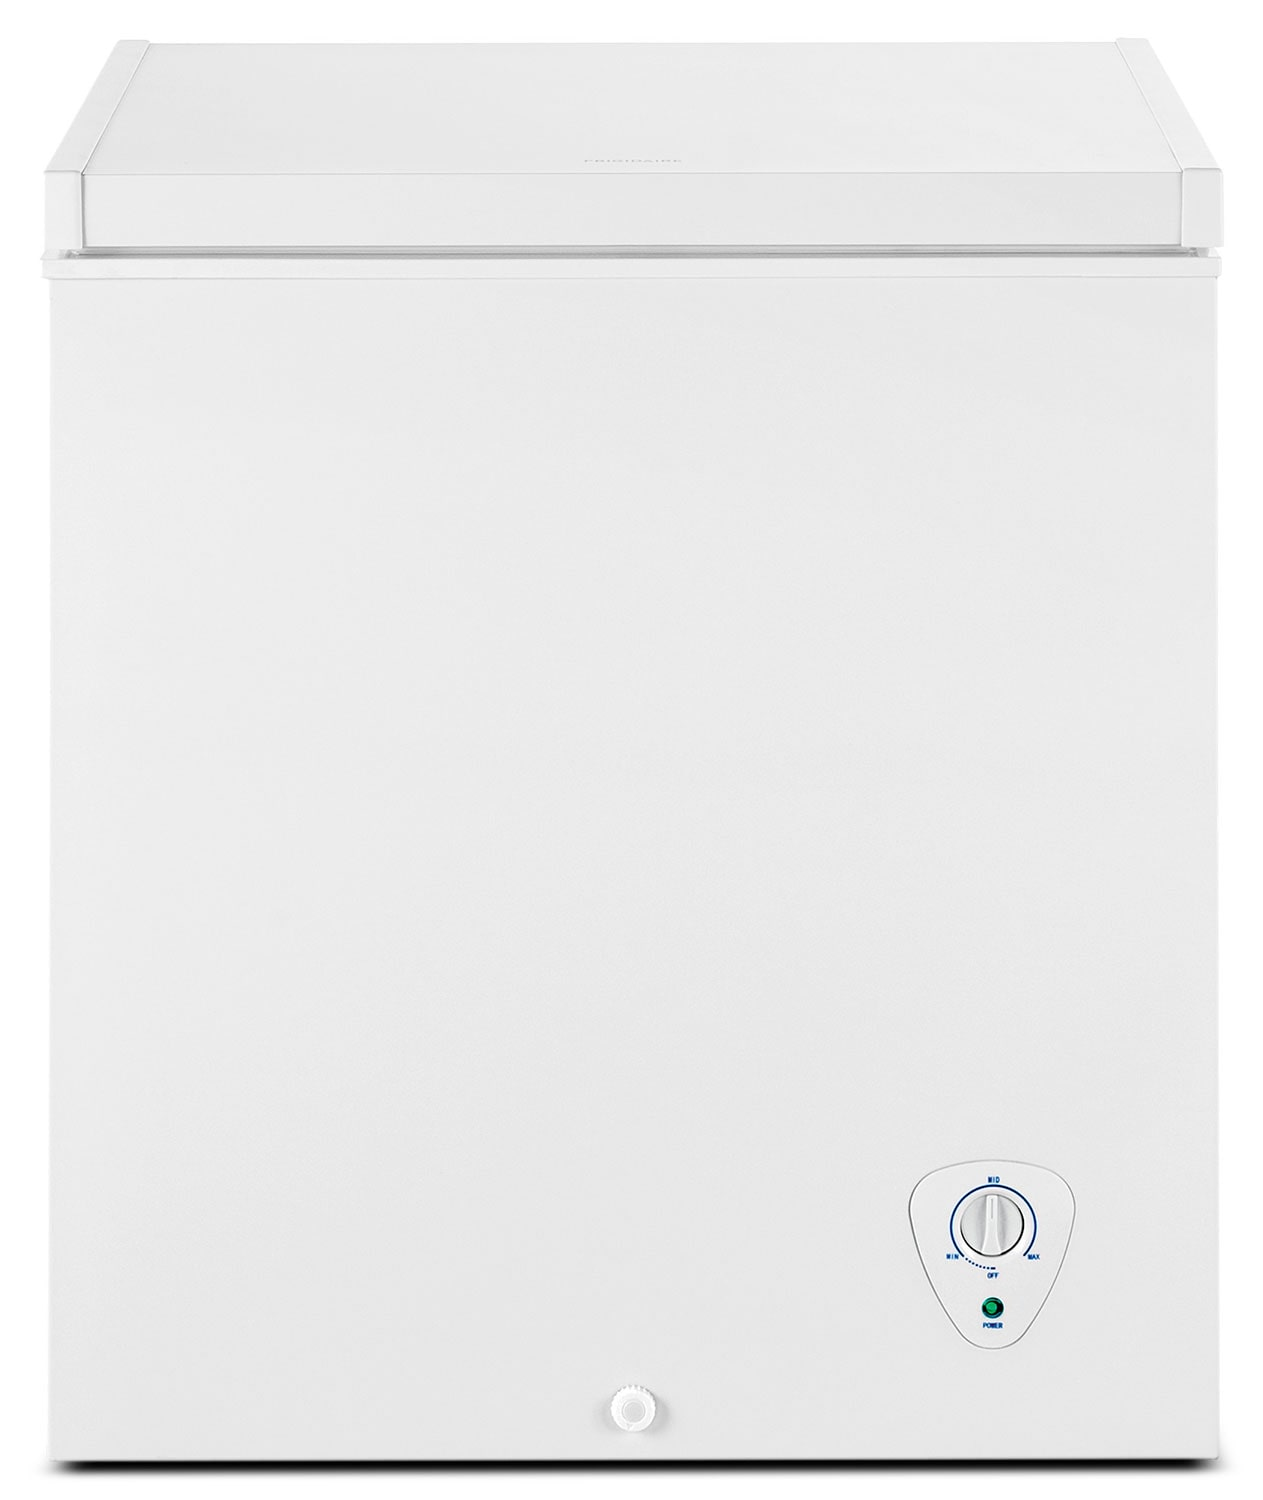 Frigidaire White Chest Freezer (5.0 Cu. Ft.) - FFFC05M1QW